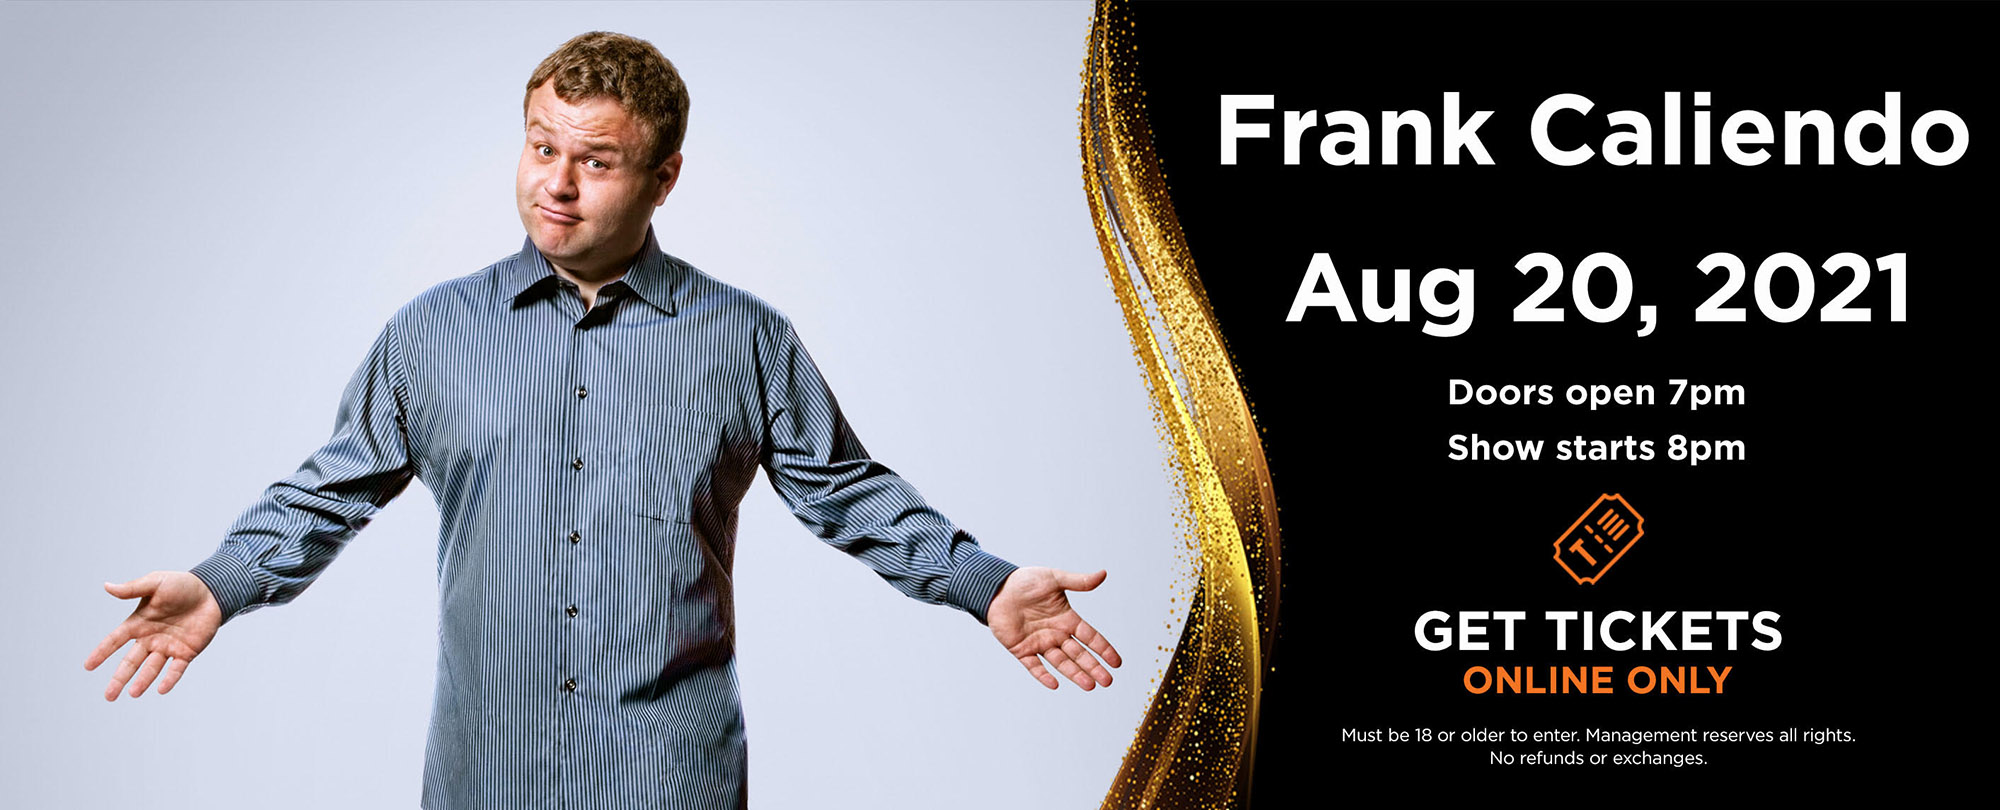 Frank Caliendo August 20th, 2021   Doors open 7pm, Show starts 8pm